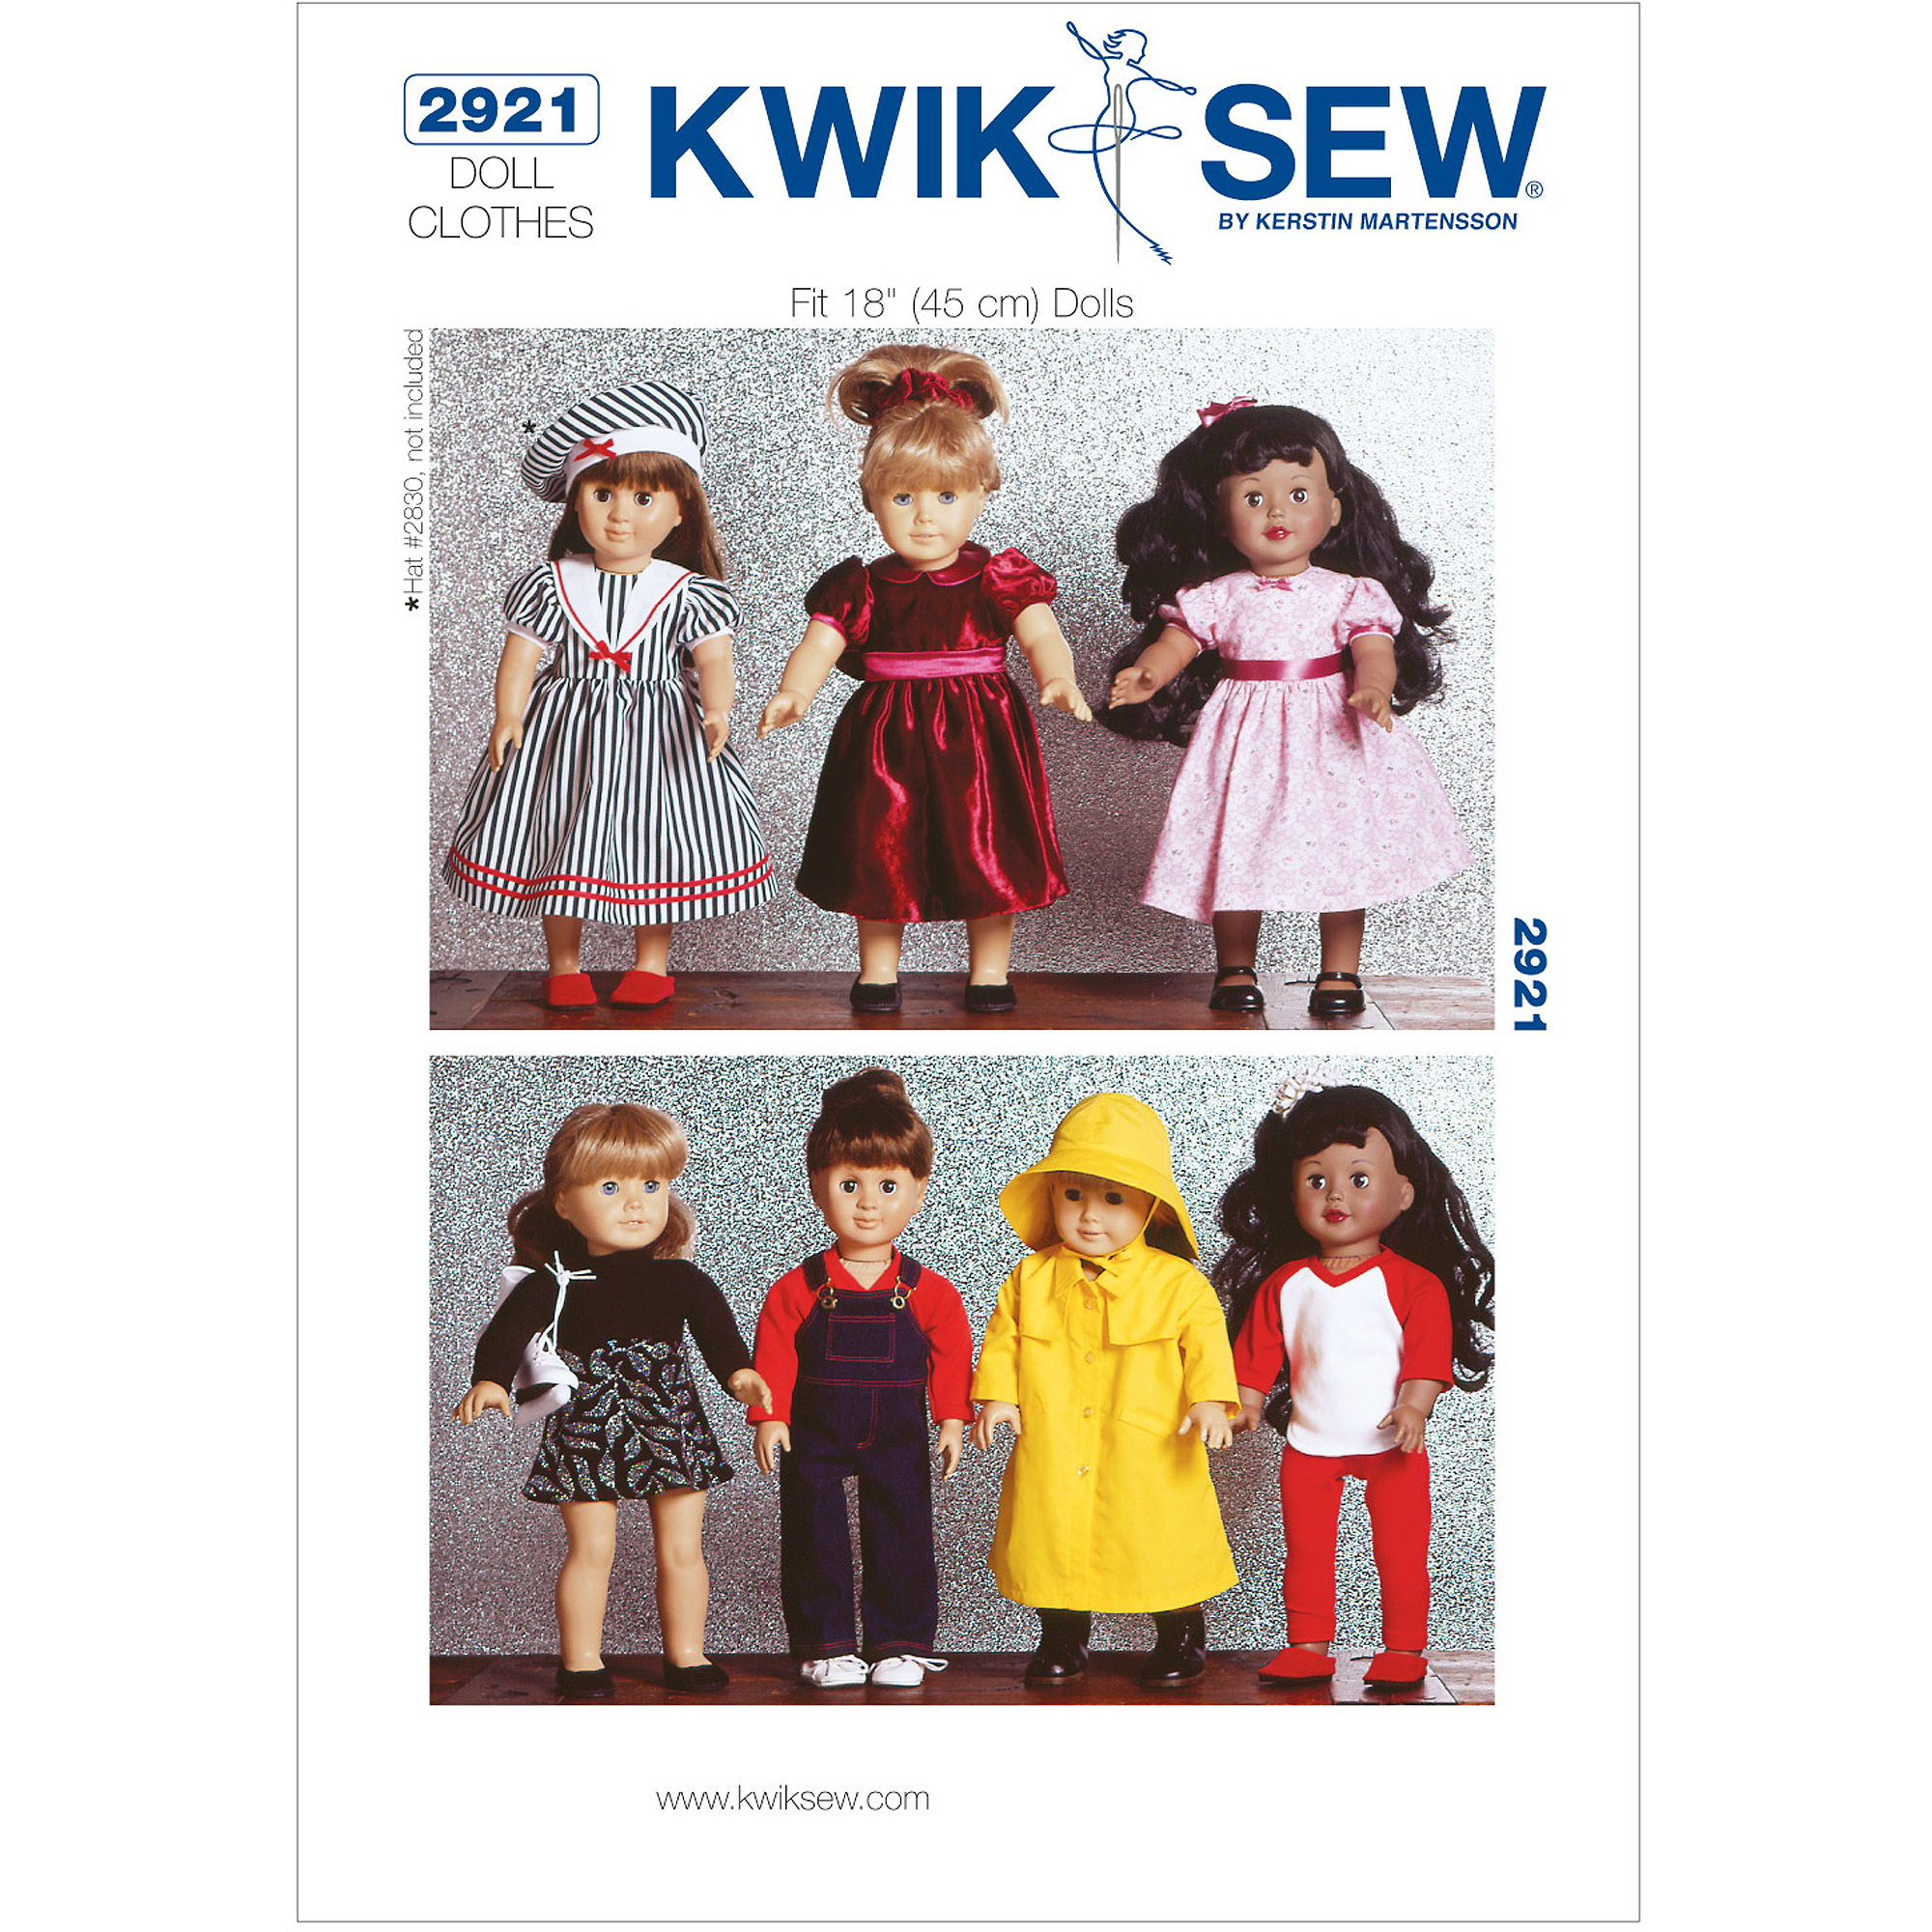 "Kwik Sew Pattern Dolls Clothes, Fits 18"" Dolls"